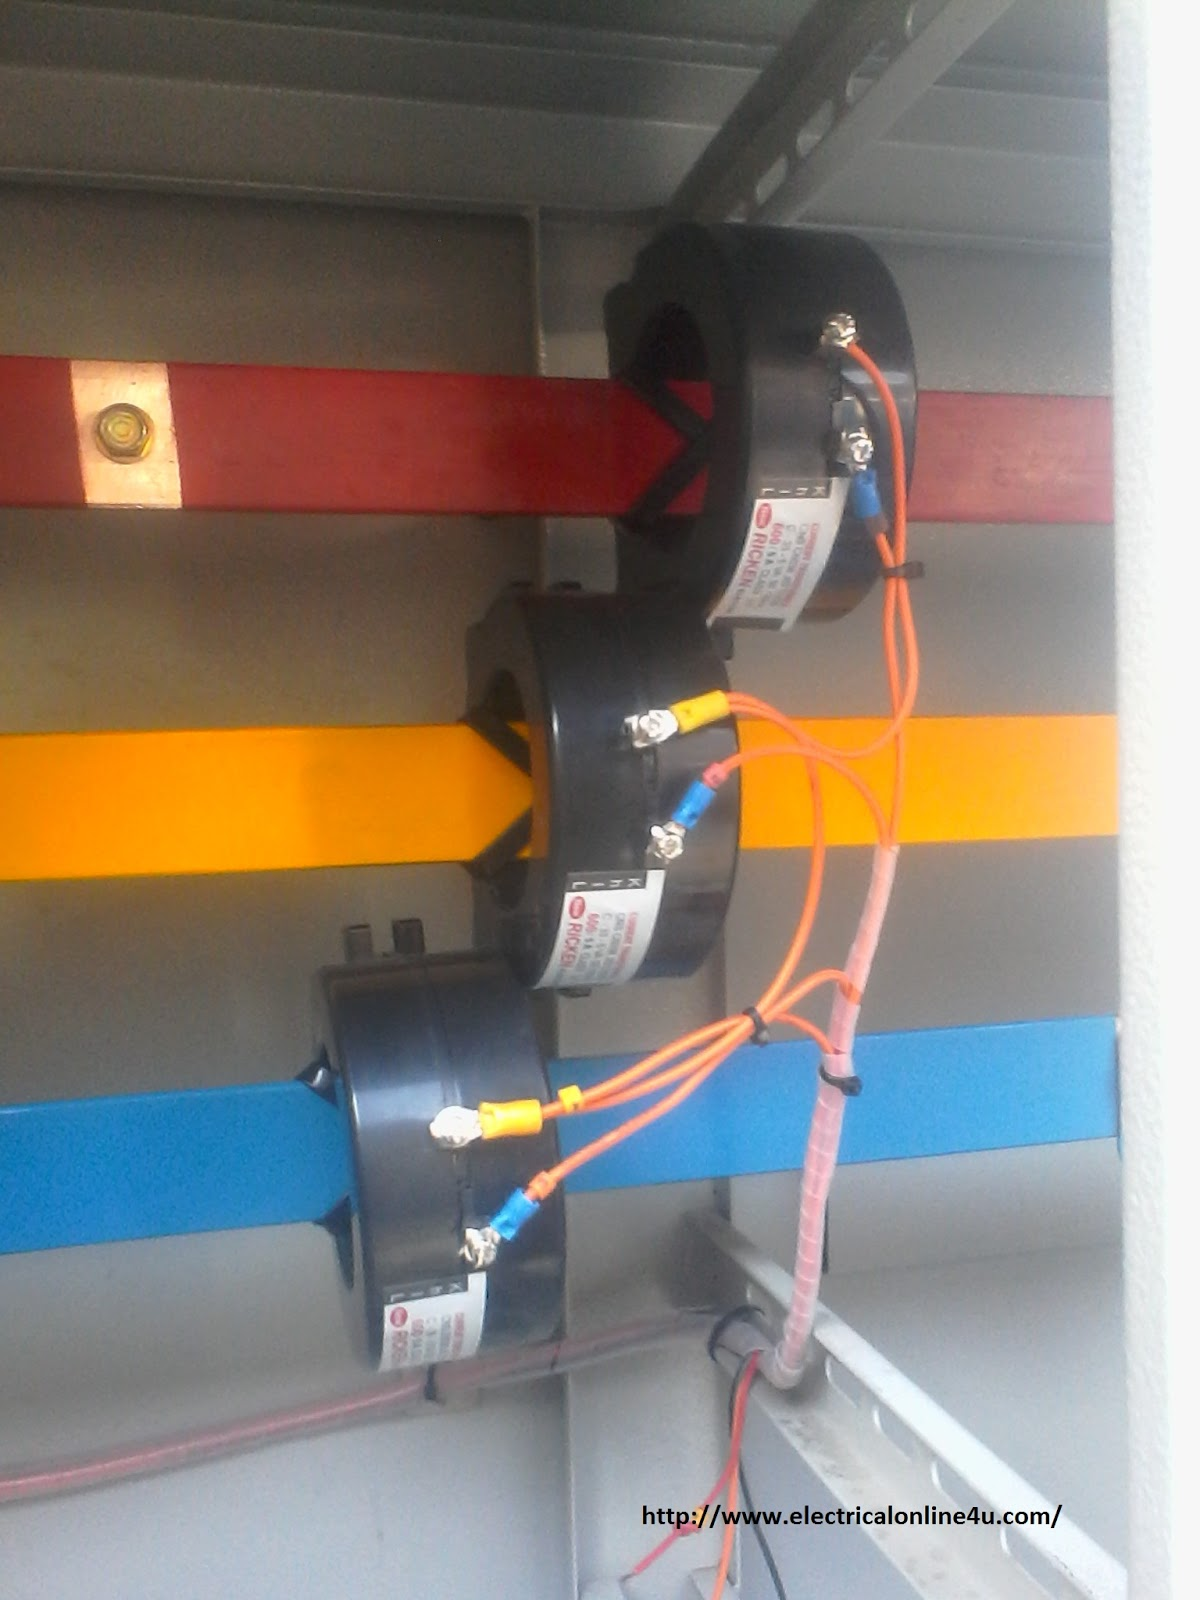 Wiring Diagram Current Transformer : Current transformer installation for three phase power